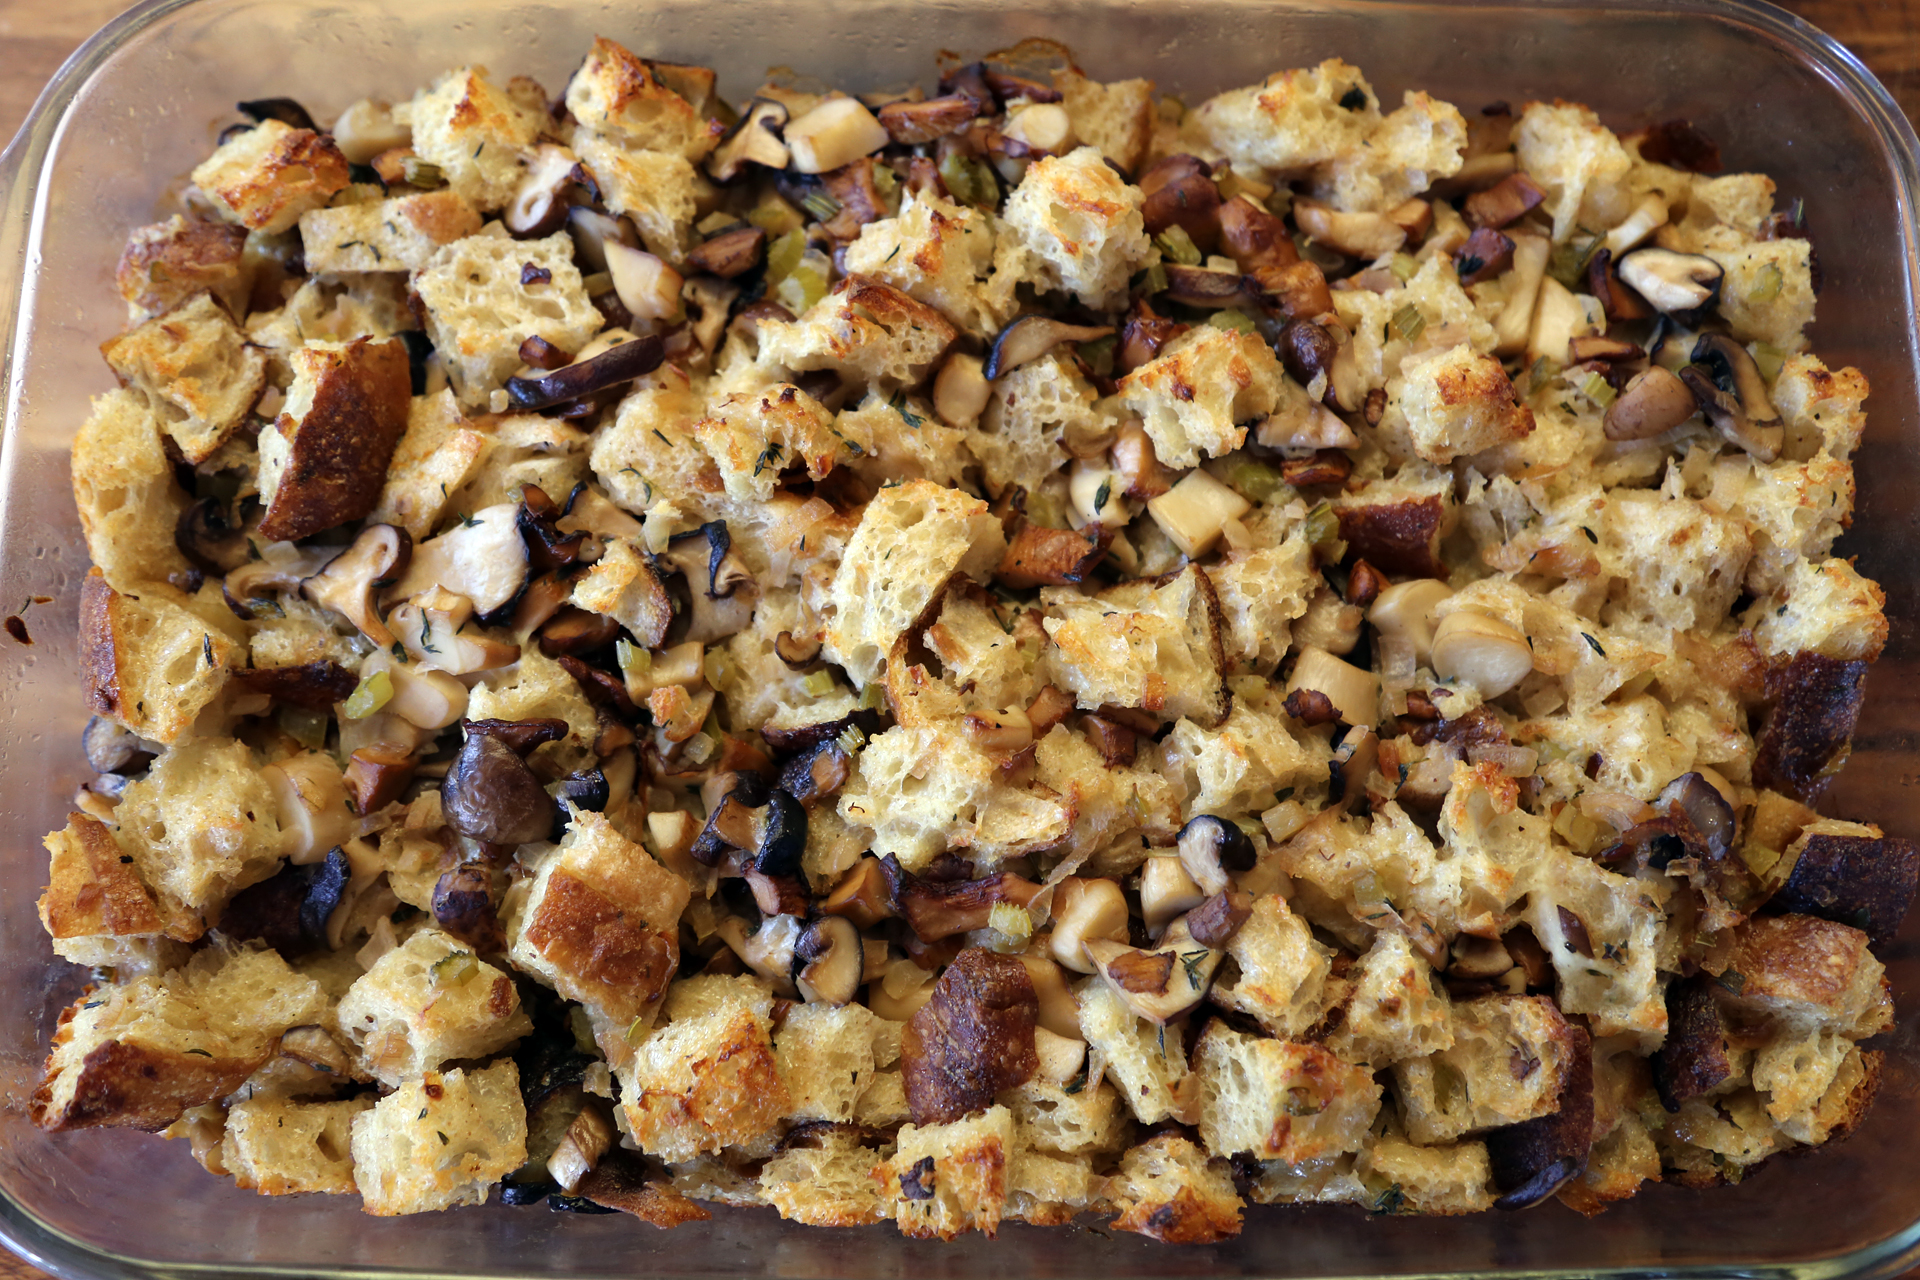 Wild Mushroom, Shallot, and Sourdough Stuffing with Herbs.